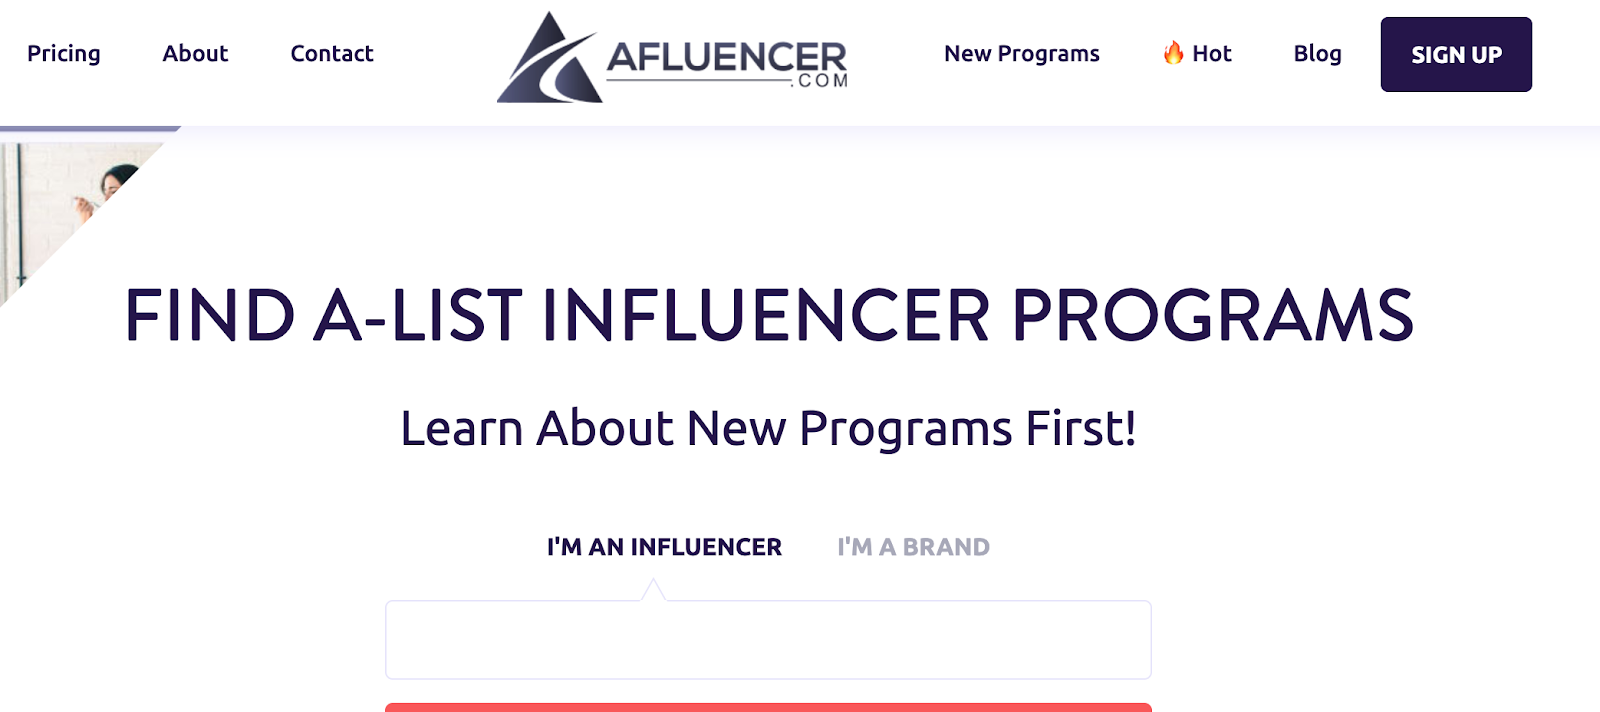 Afluencer - Best Influencer Marketing Platform